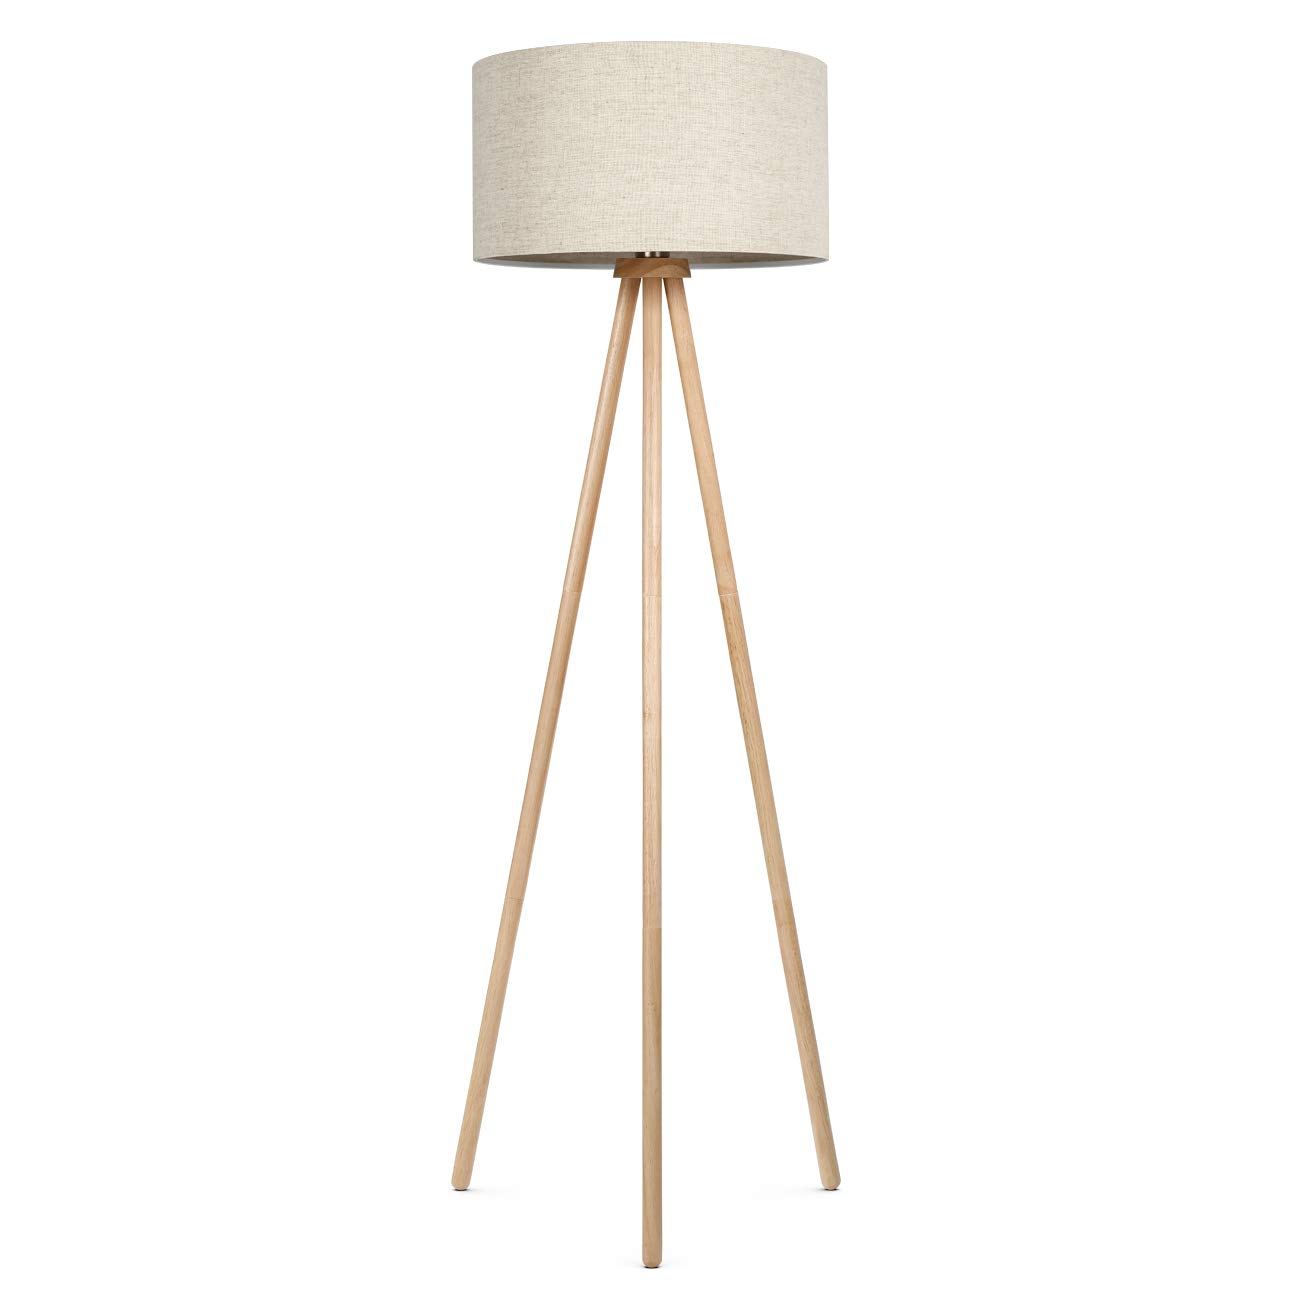 09e4237d61e6 Amazon.com: Tomons Wood Frame Tripod Floor Lamp Standing Lamp for Living  Reading Room Bedroom Offices Modern with Fabric Lampshade, 8W LED Bulb  Included: ...